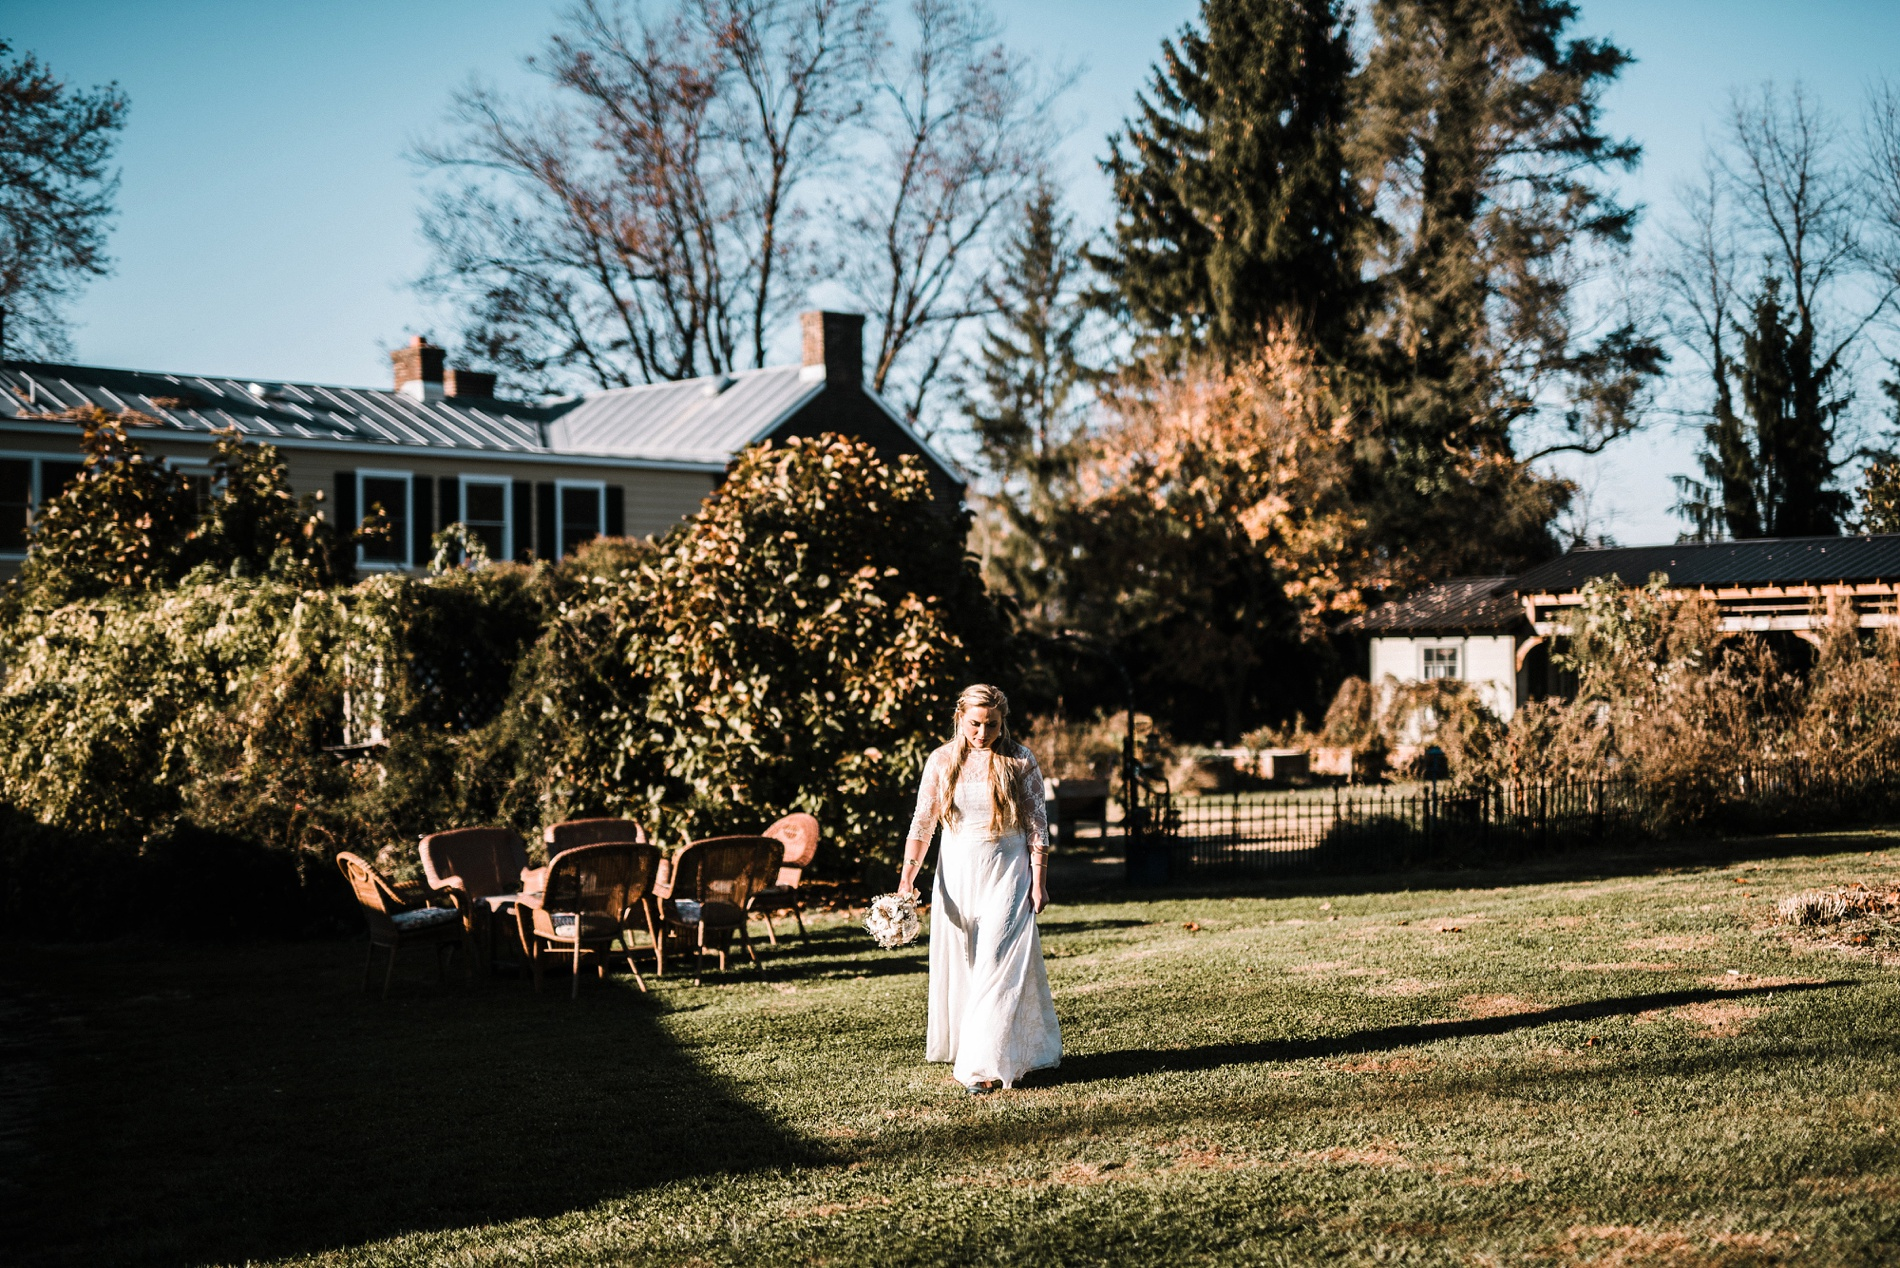 khimaira farm wedding